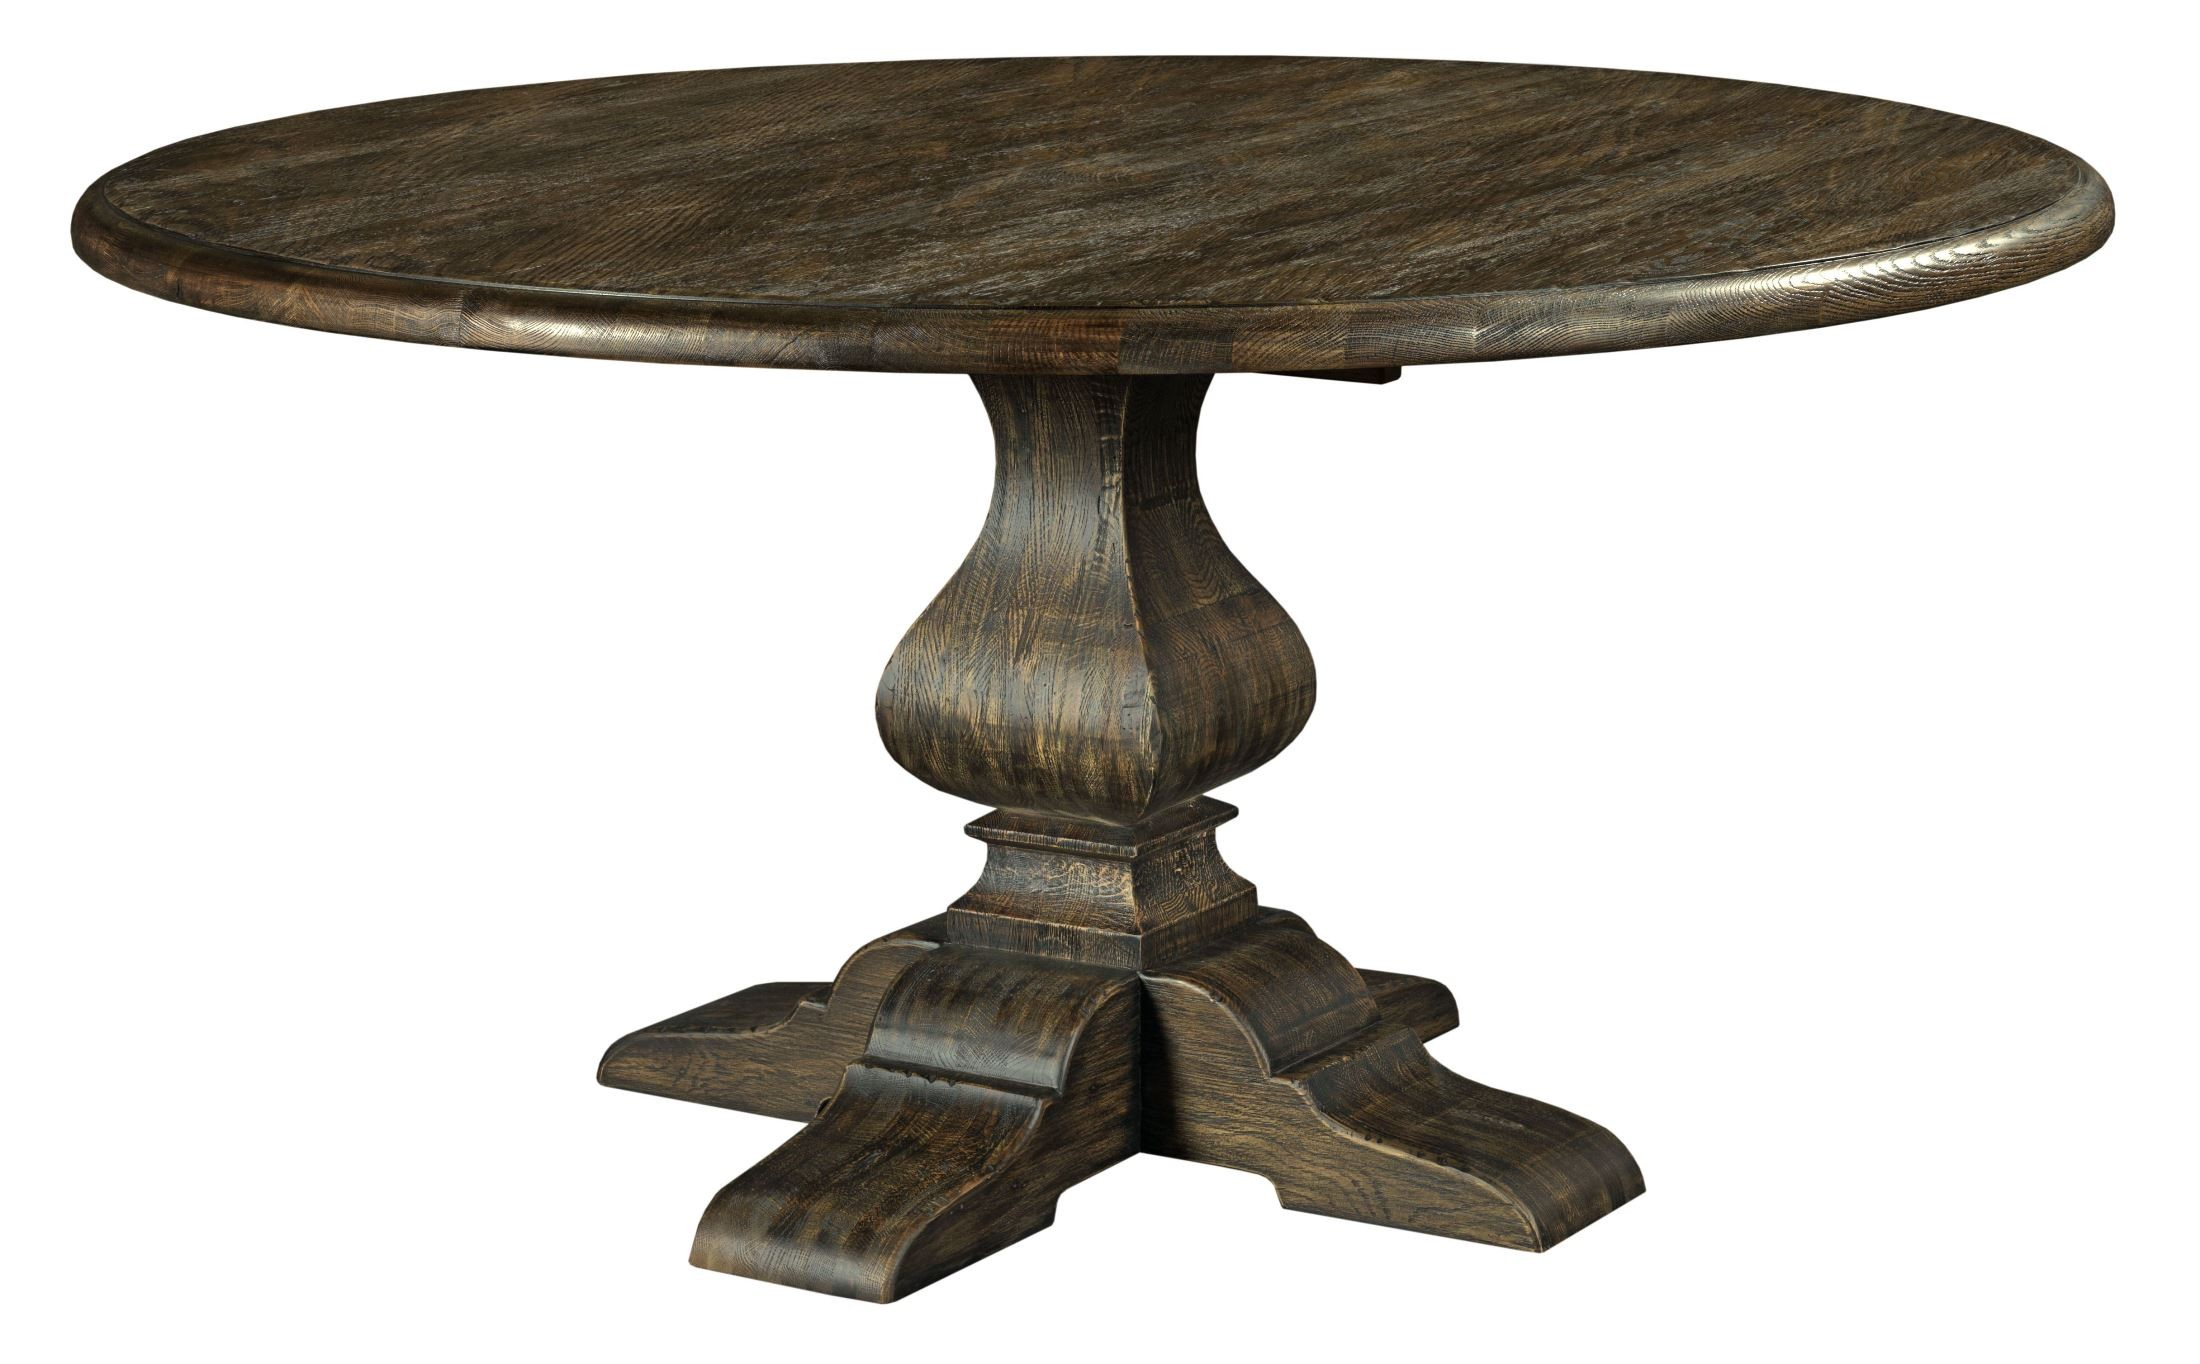 """Artisans Shoppe 60"""" Black Forest Round Dining Table With. Modern Pellet Stove. Chair Swings. Playroom Rules. Stand Up Tub"""